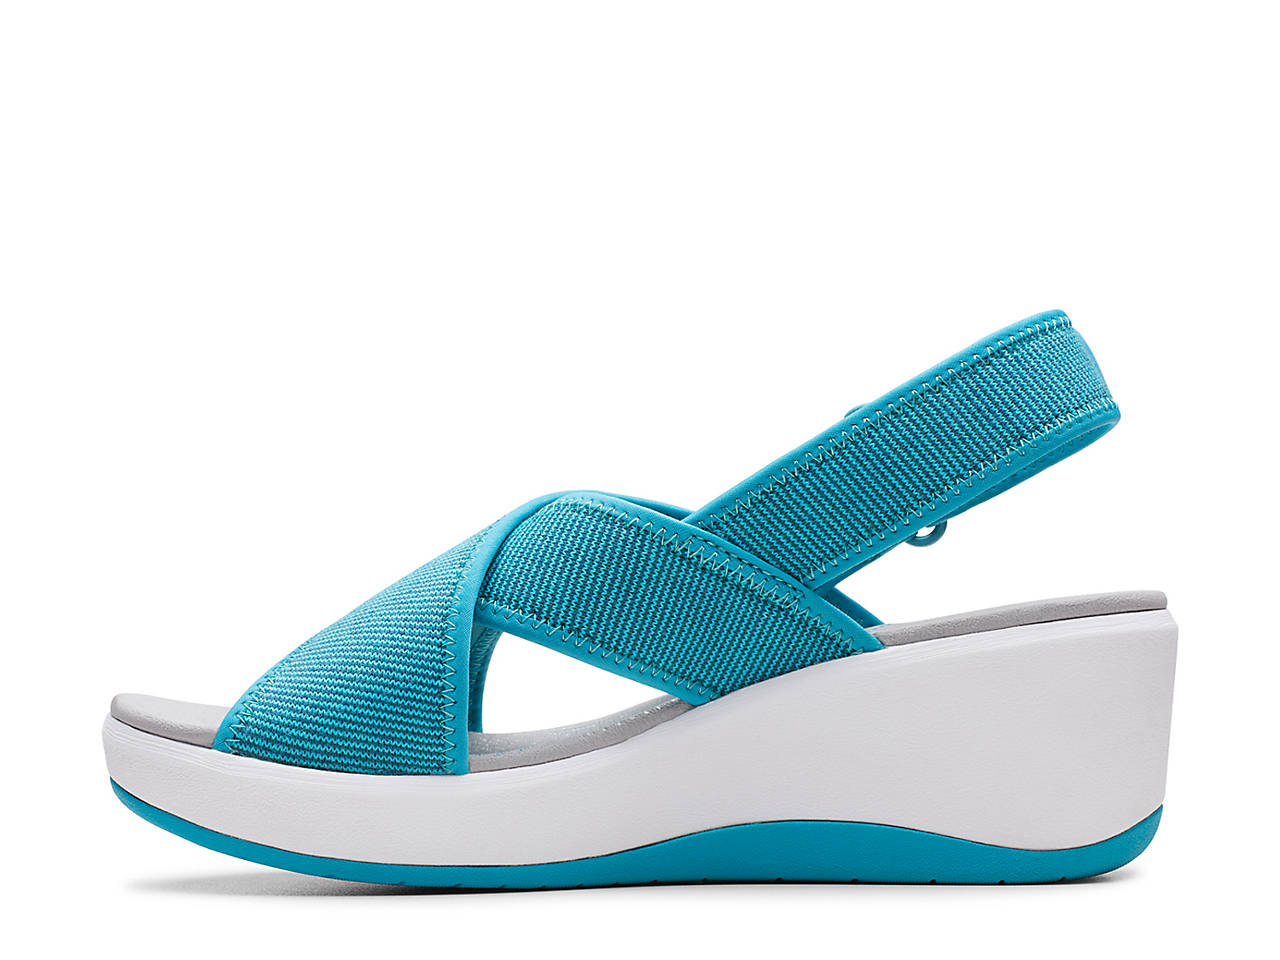 cd5cc7ef8da8 Cloudsteppers by Clarks Step Cali Cove Wedge Sandal Women s Shoes